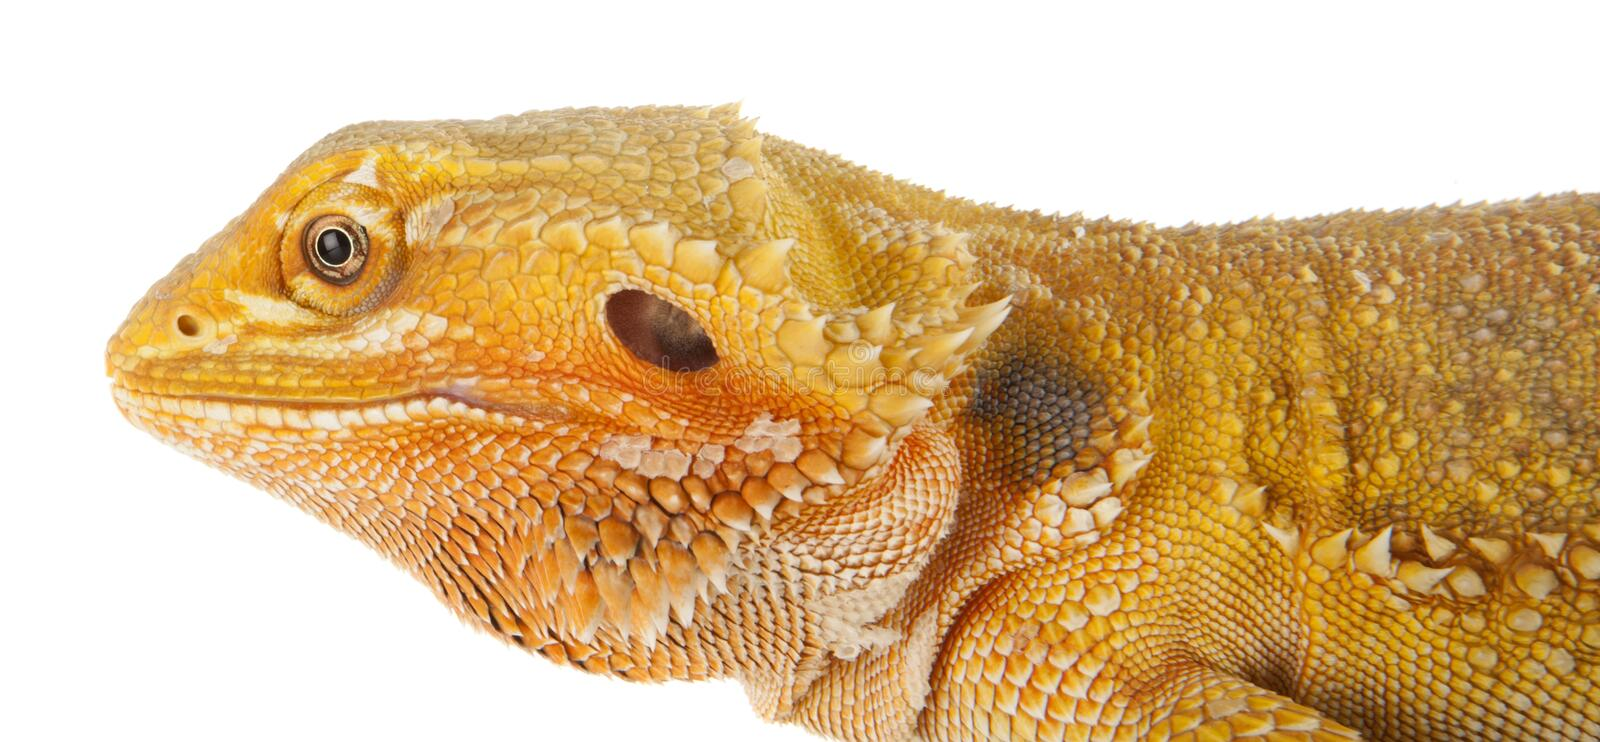 Download Bearded Dragon stock photo. Image of reptiles, reptile - 24134162